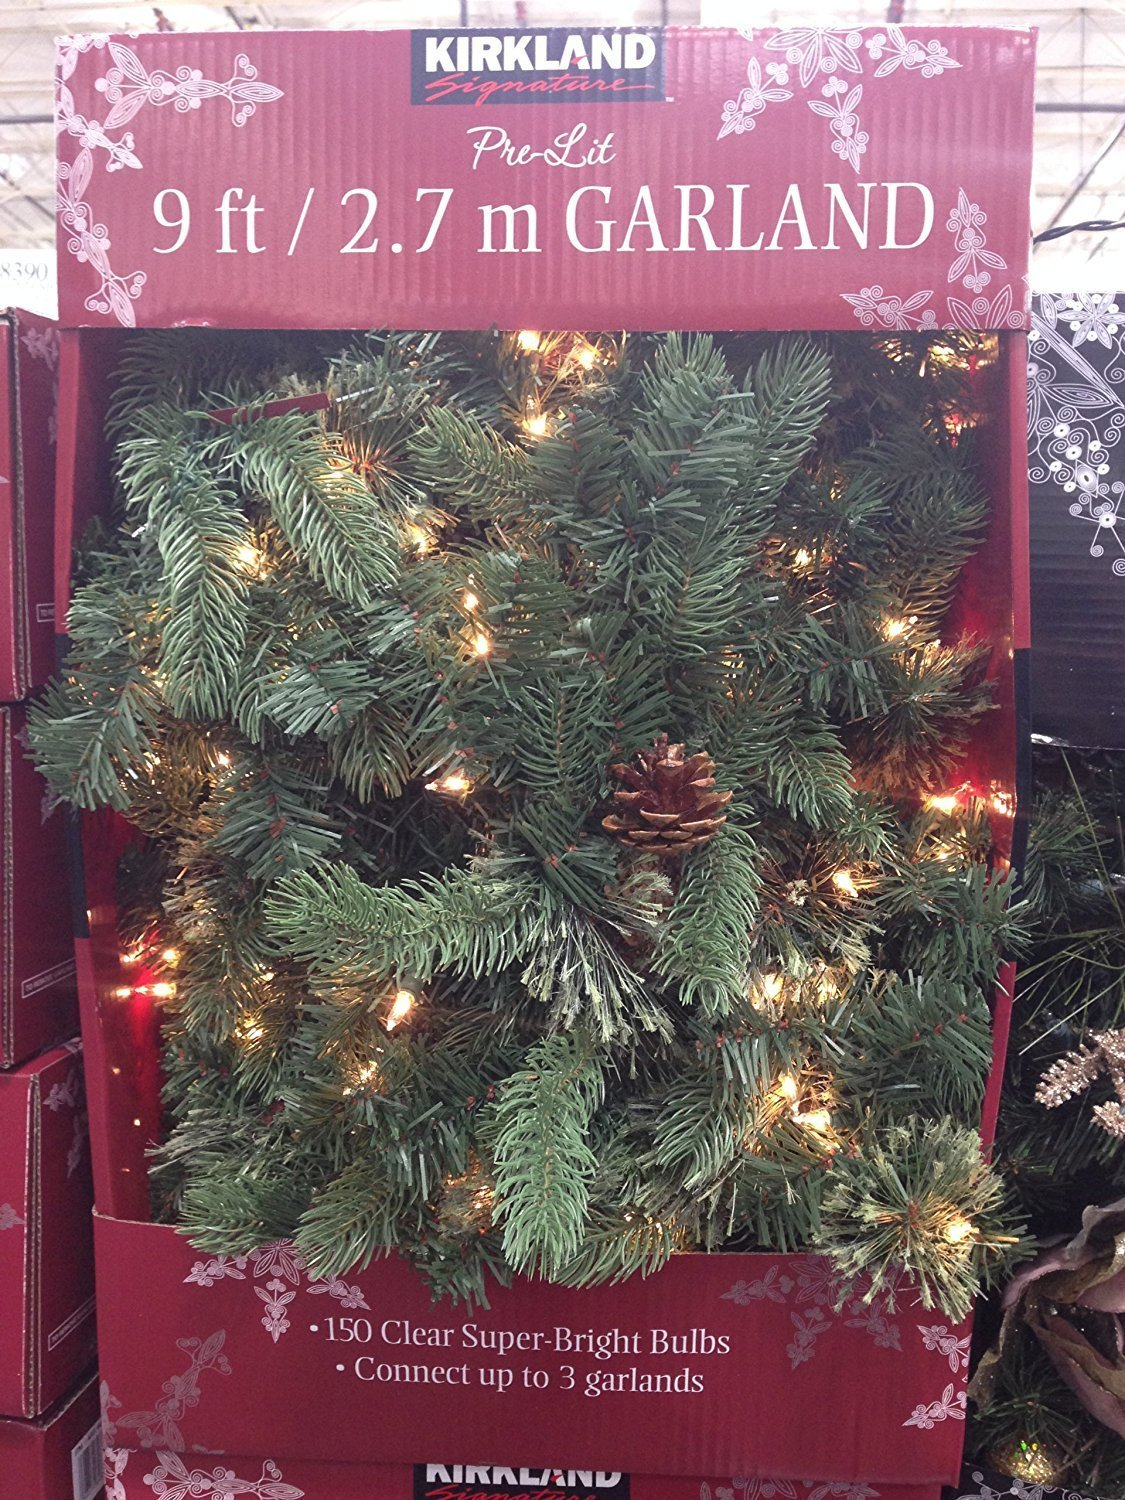 Kirklands Christmas.Amazon Com Kirkland Signature 9 Ft Pre Lit Garland Reg